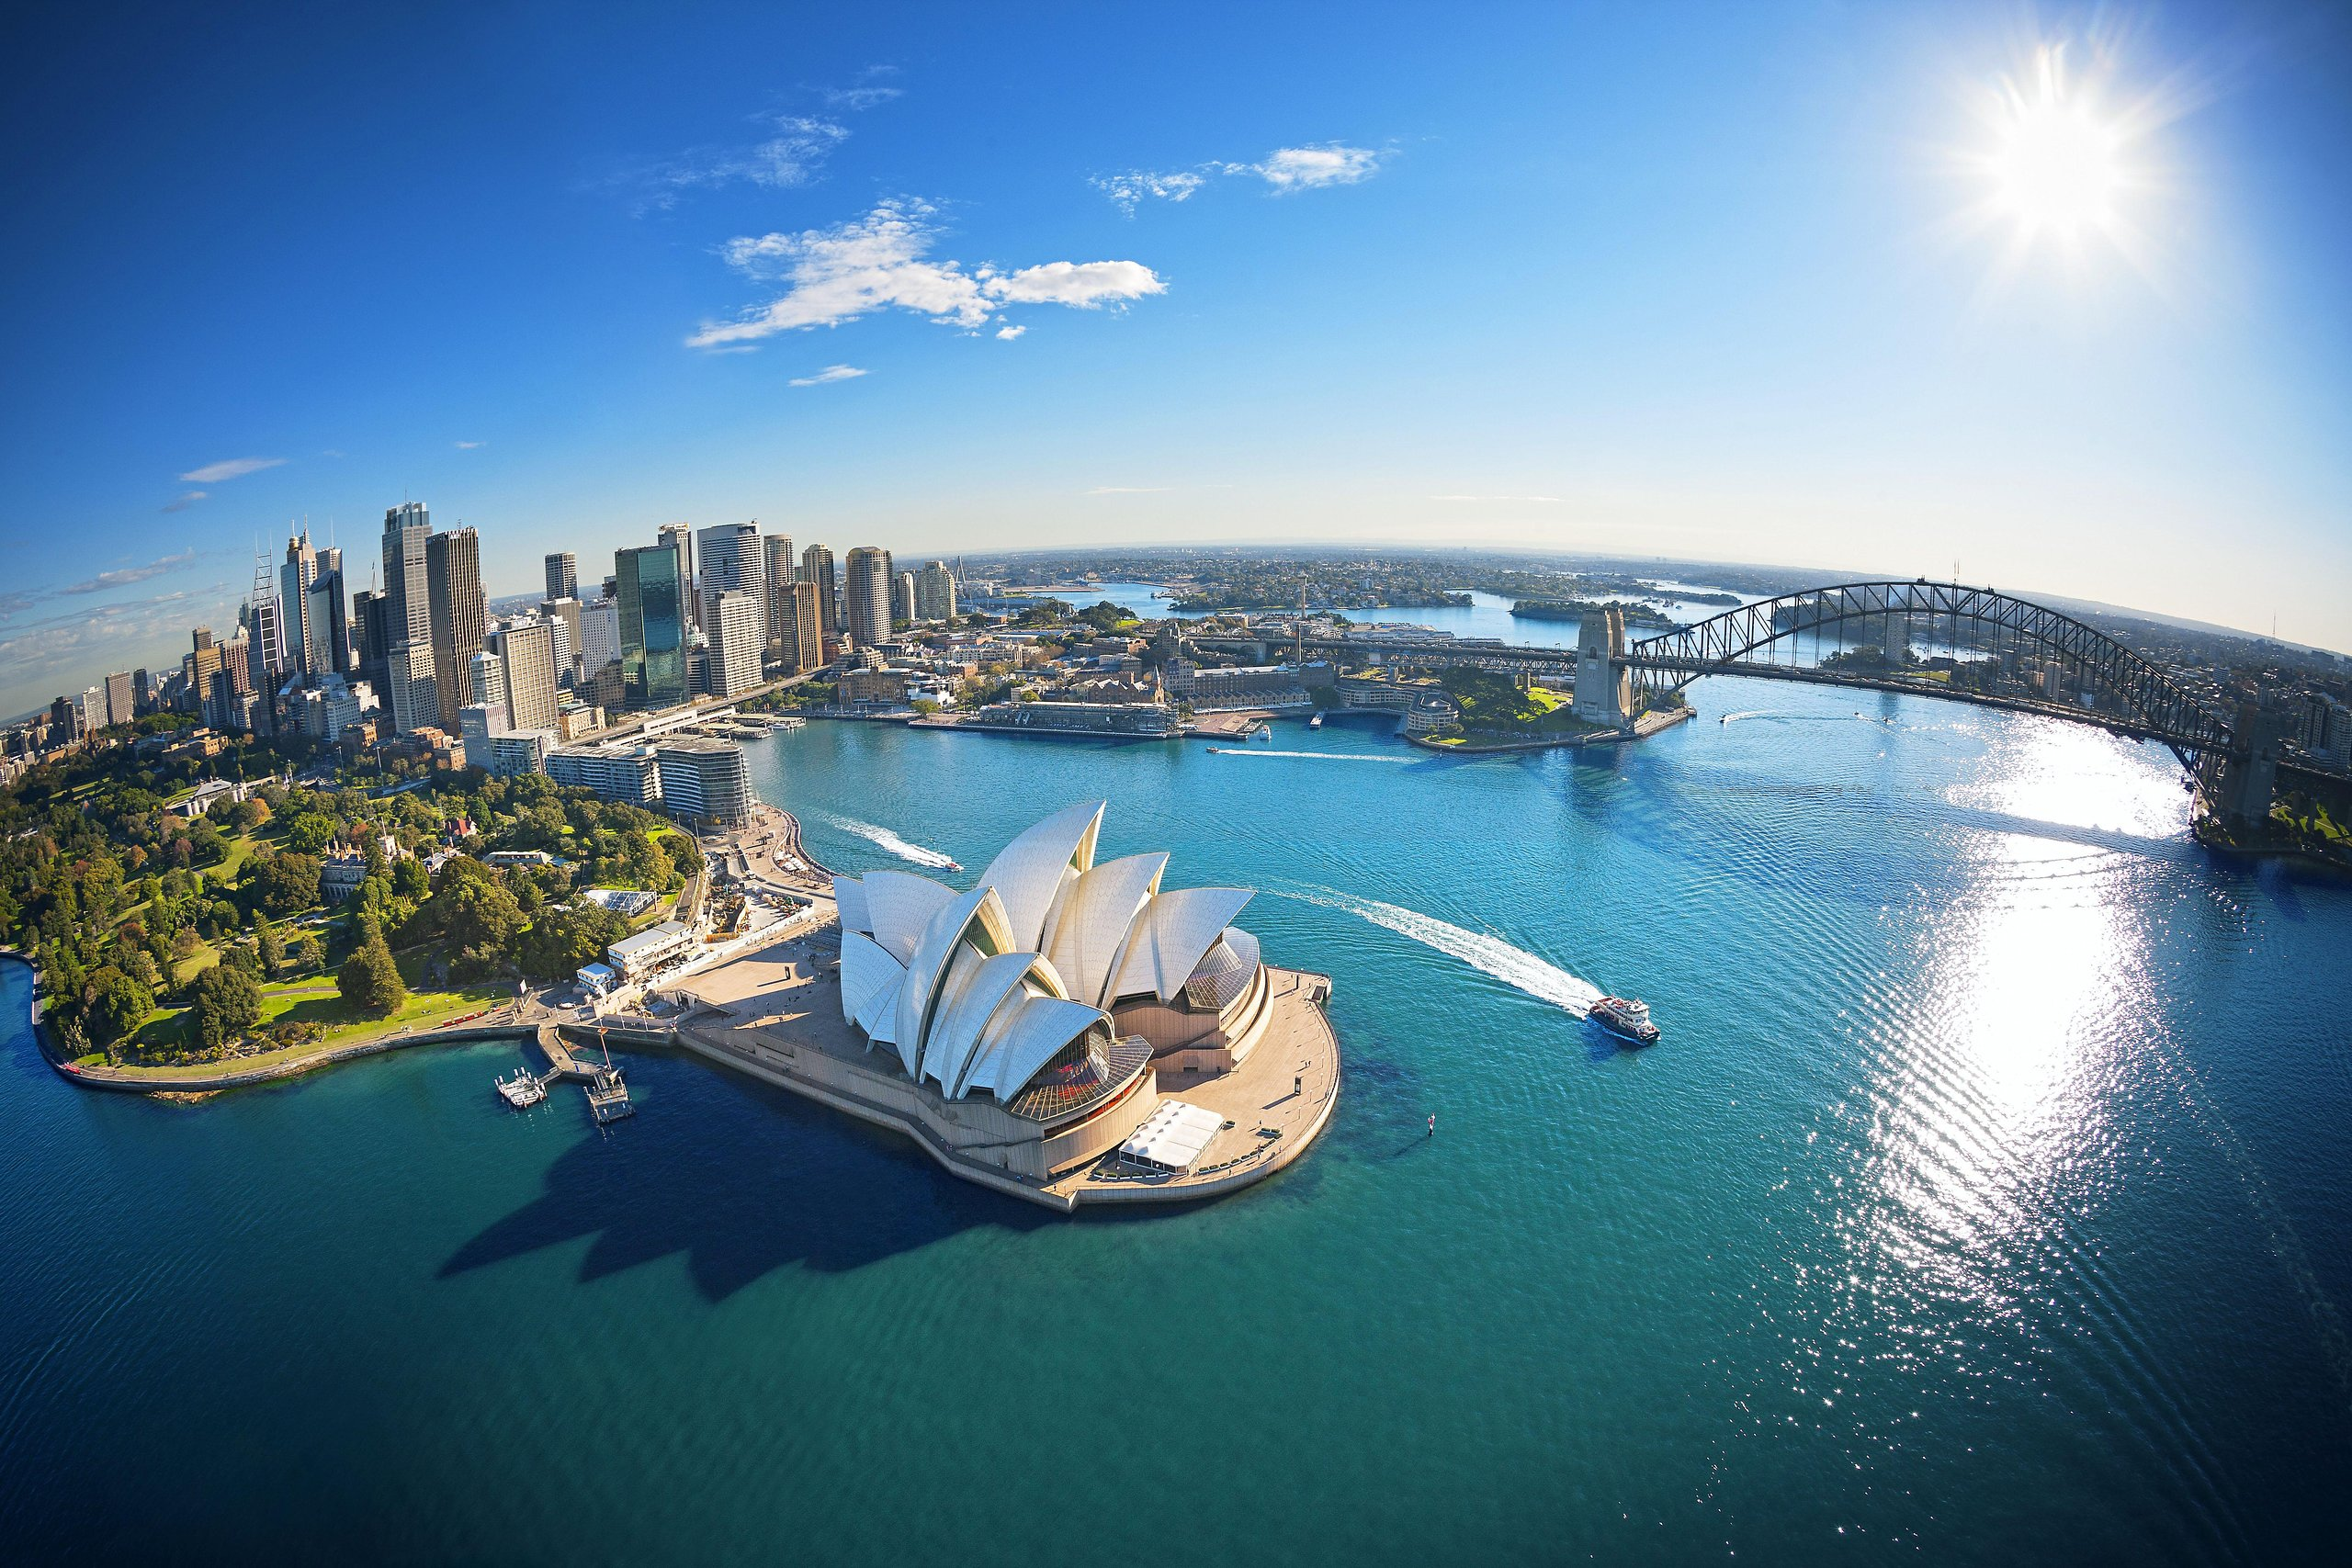 My United States Consulate Visa Interview Experience in Sydney, Australia